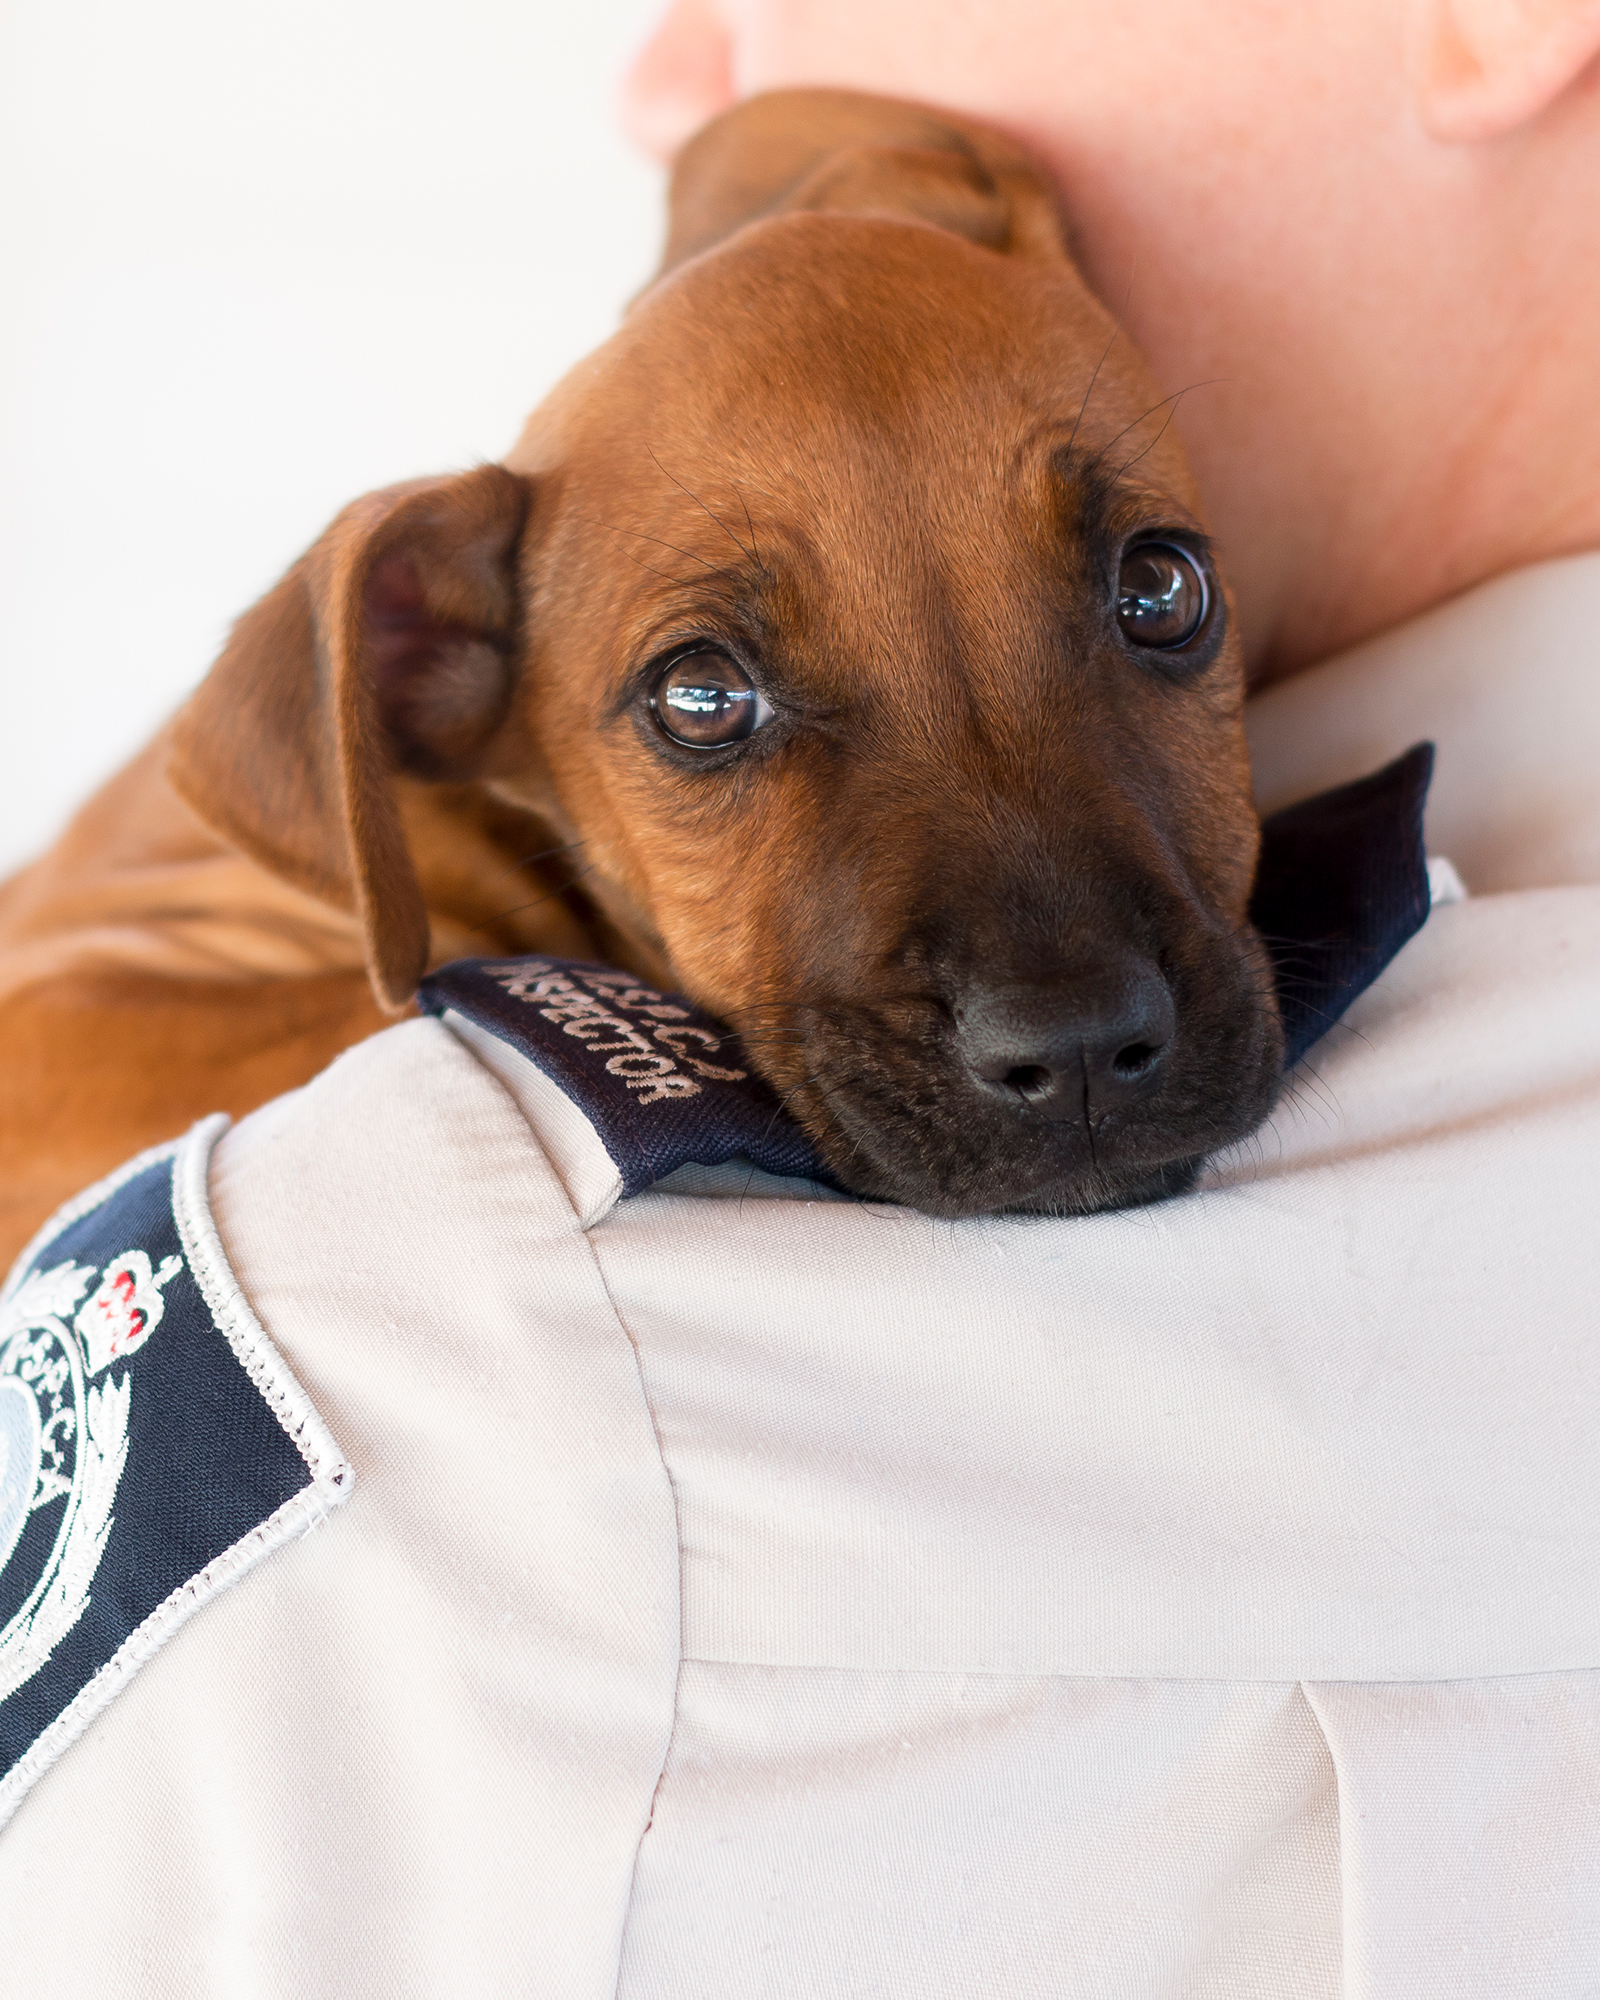 Homepage | RSPCA NSW